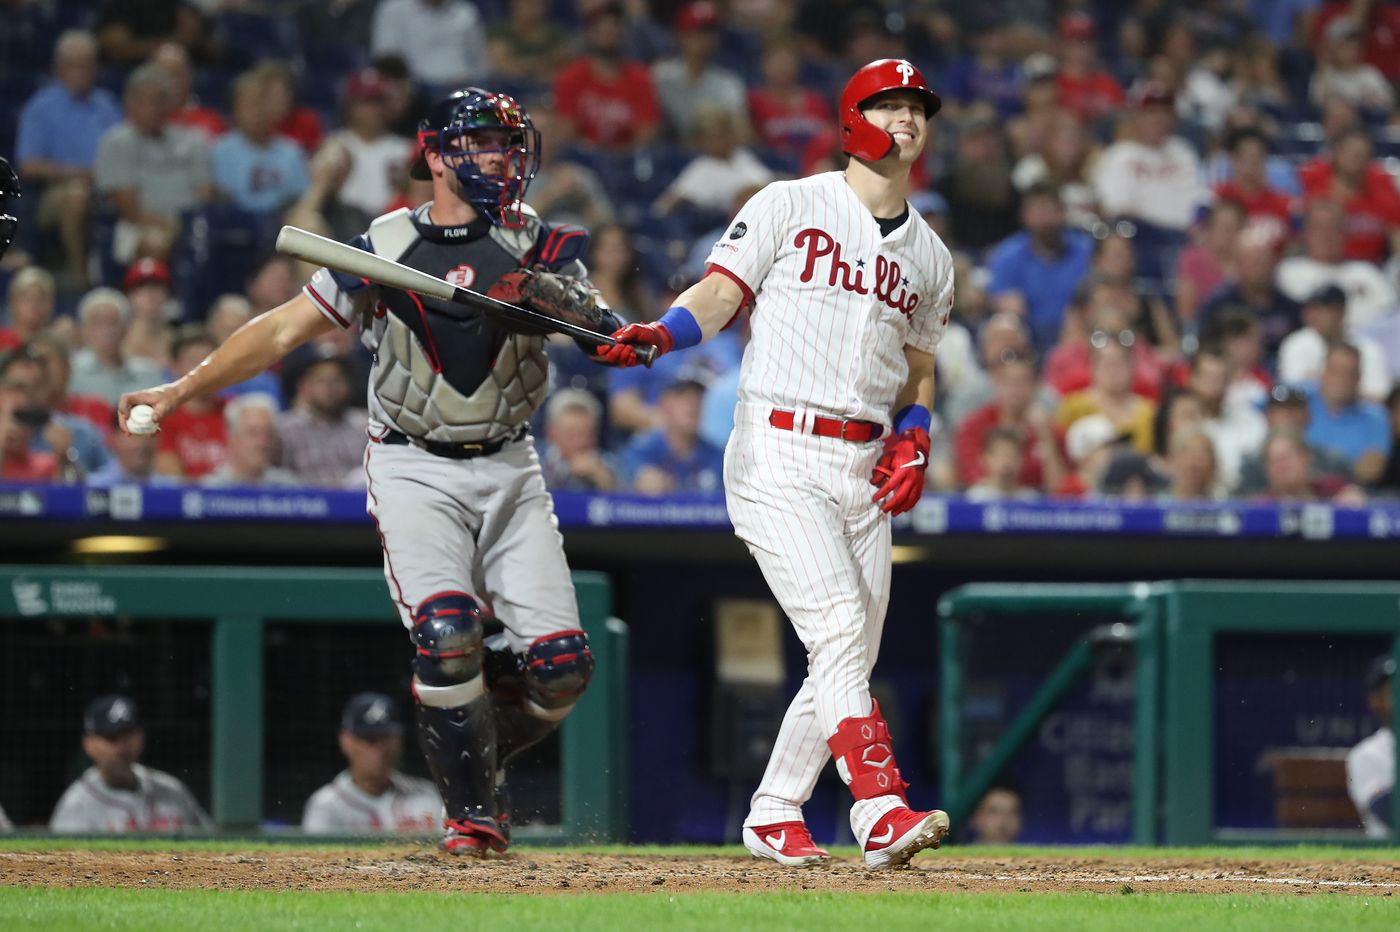 Phillies' Corey Dickerson dealing with bone bruise in left foot